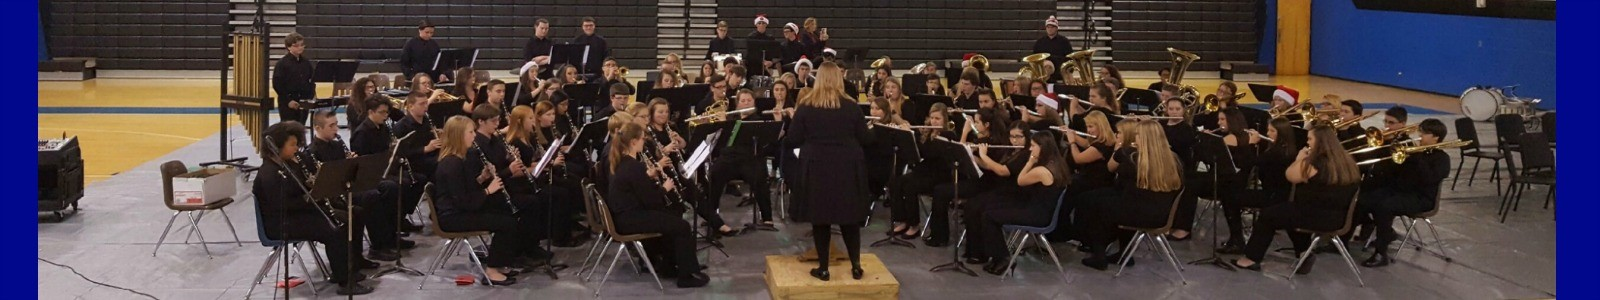 Tara Alcorn and the SCHS Band Christmas Concert